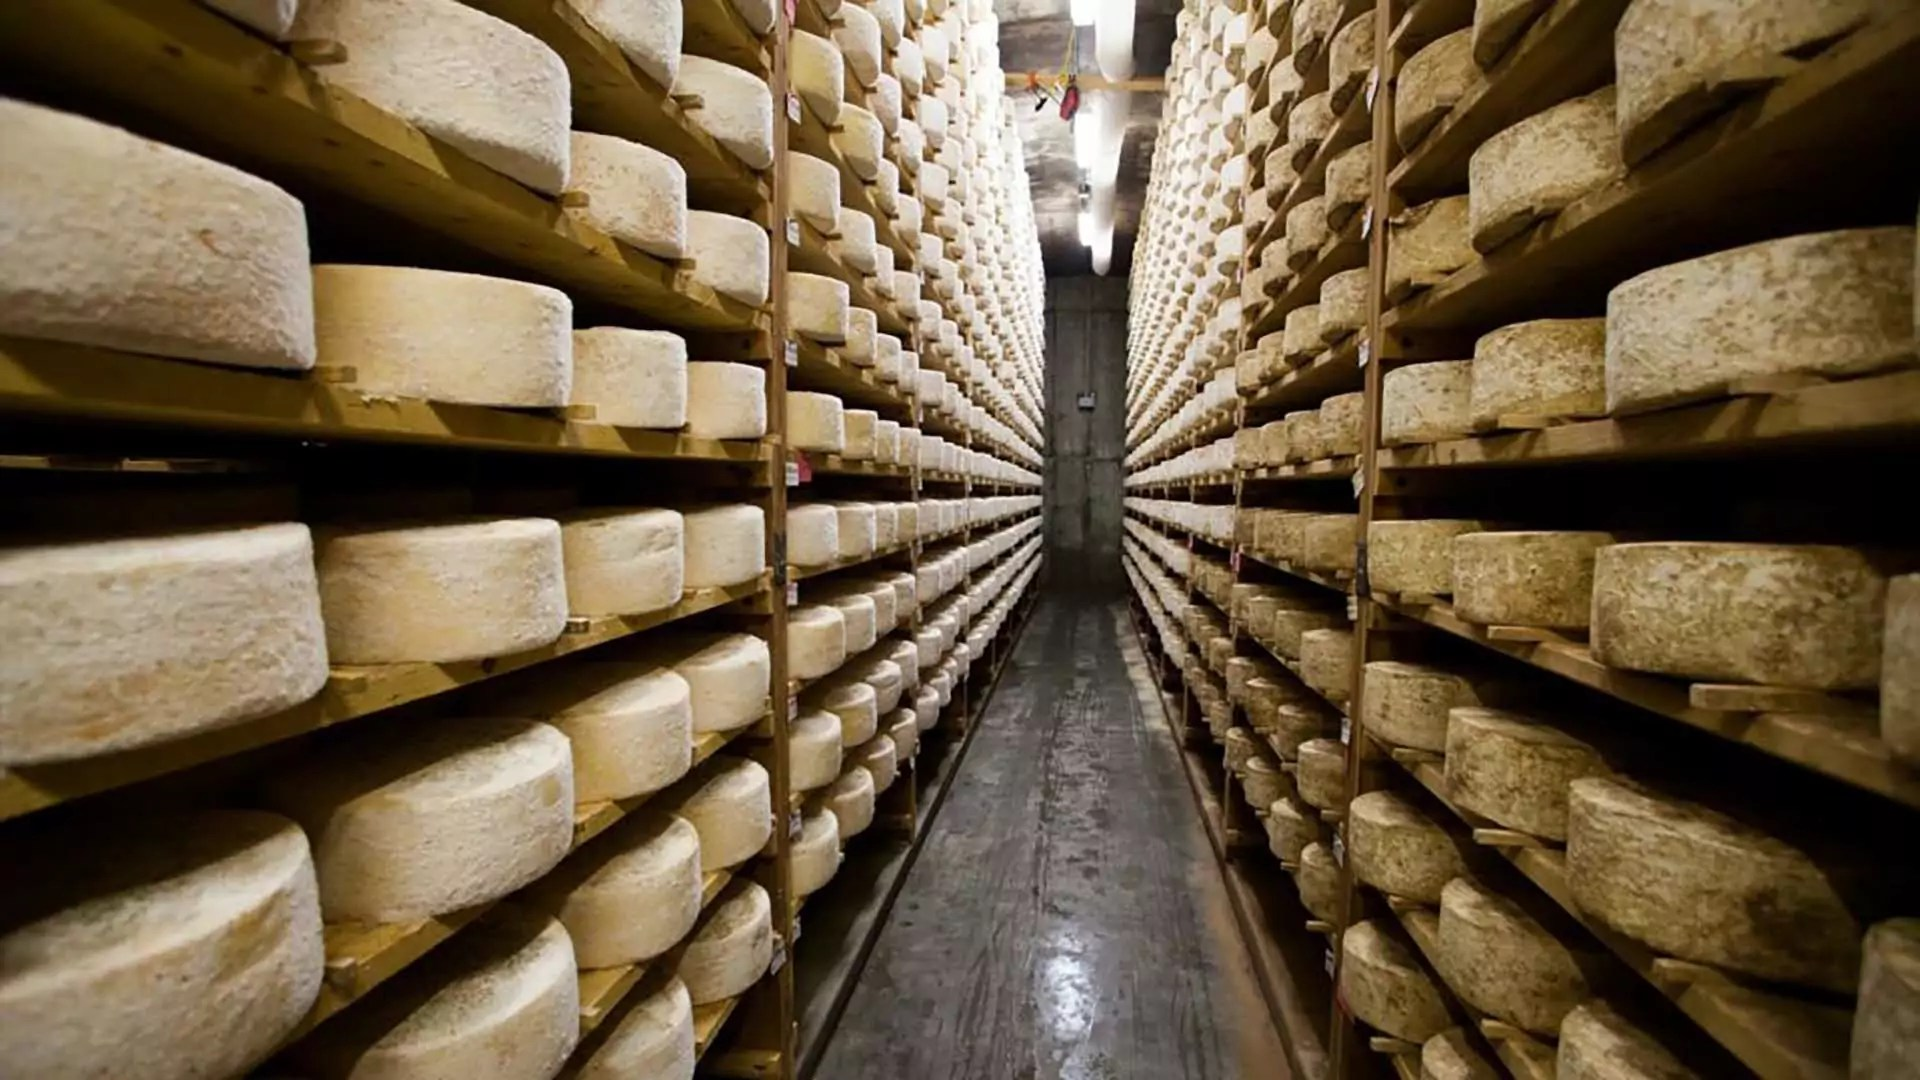 A warehouse filled with cheese.